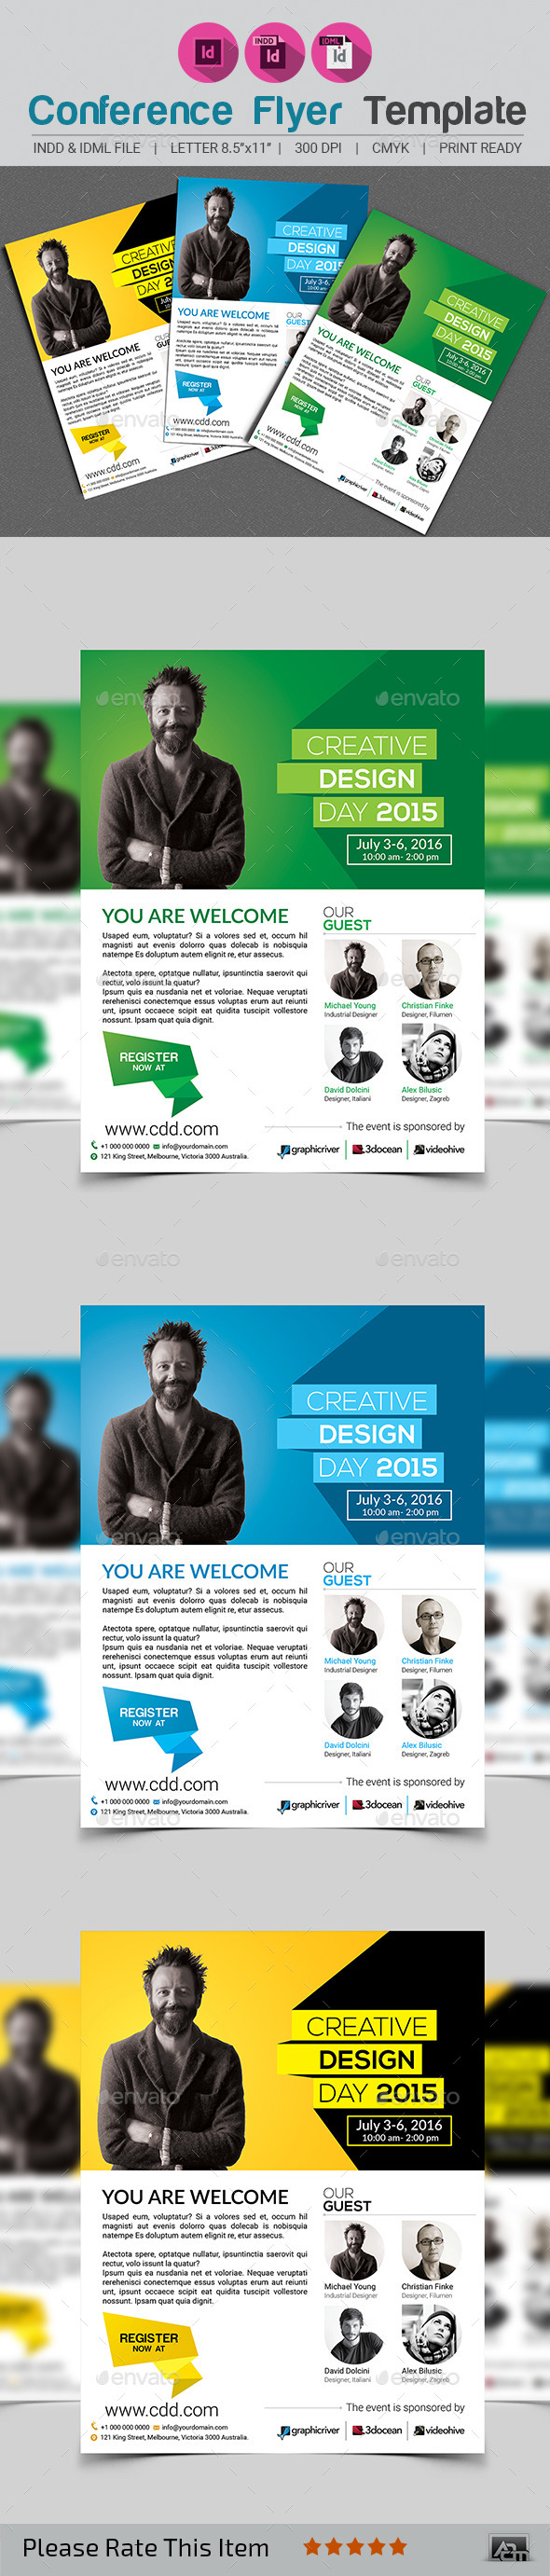 GraphicRiver Conference Flyer Template 11870920